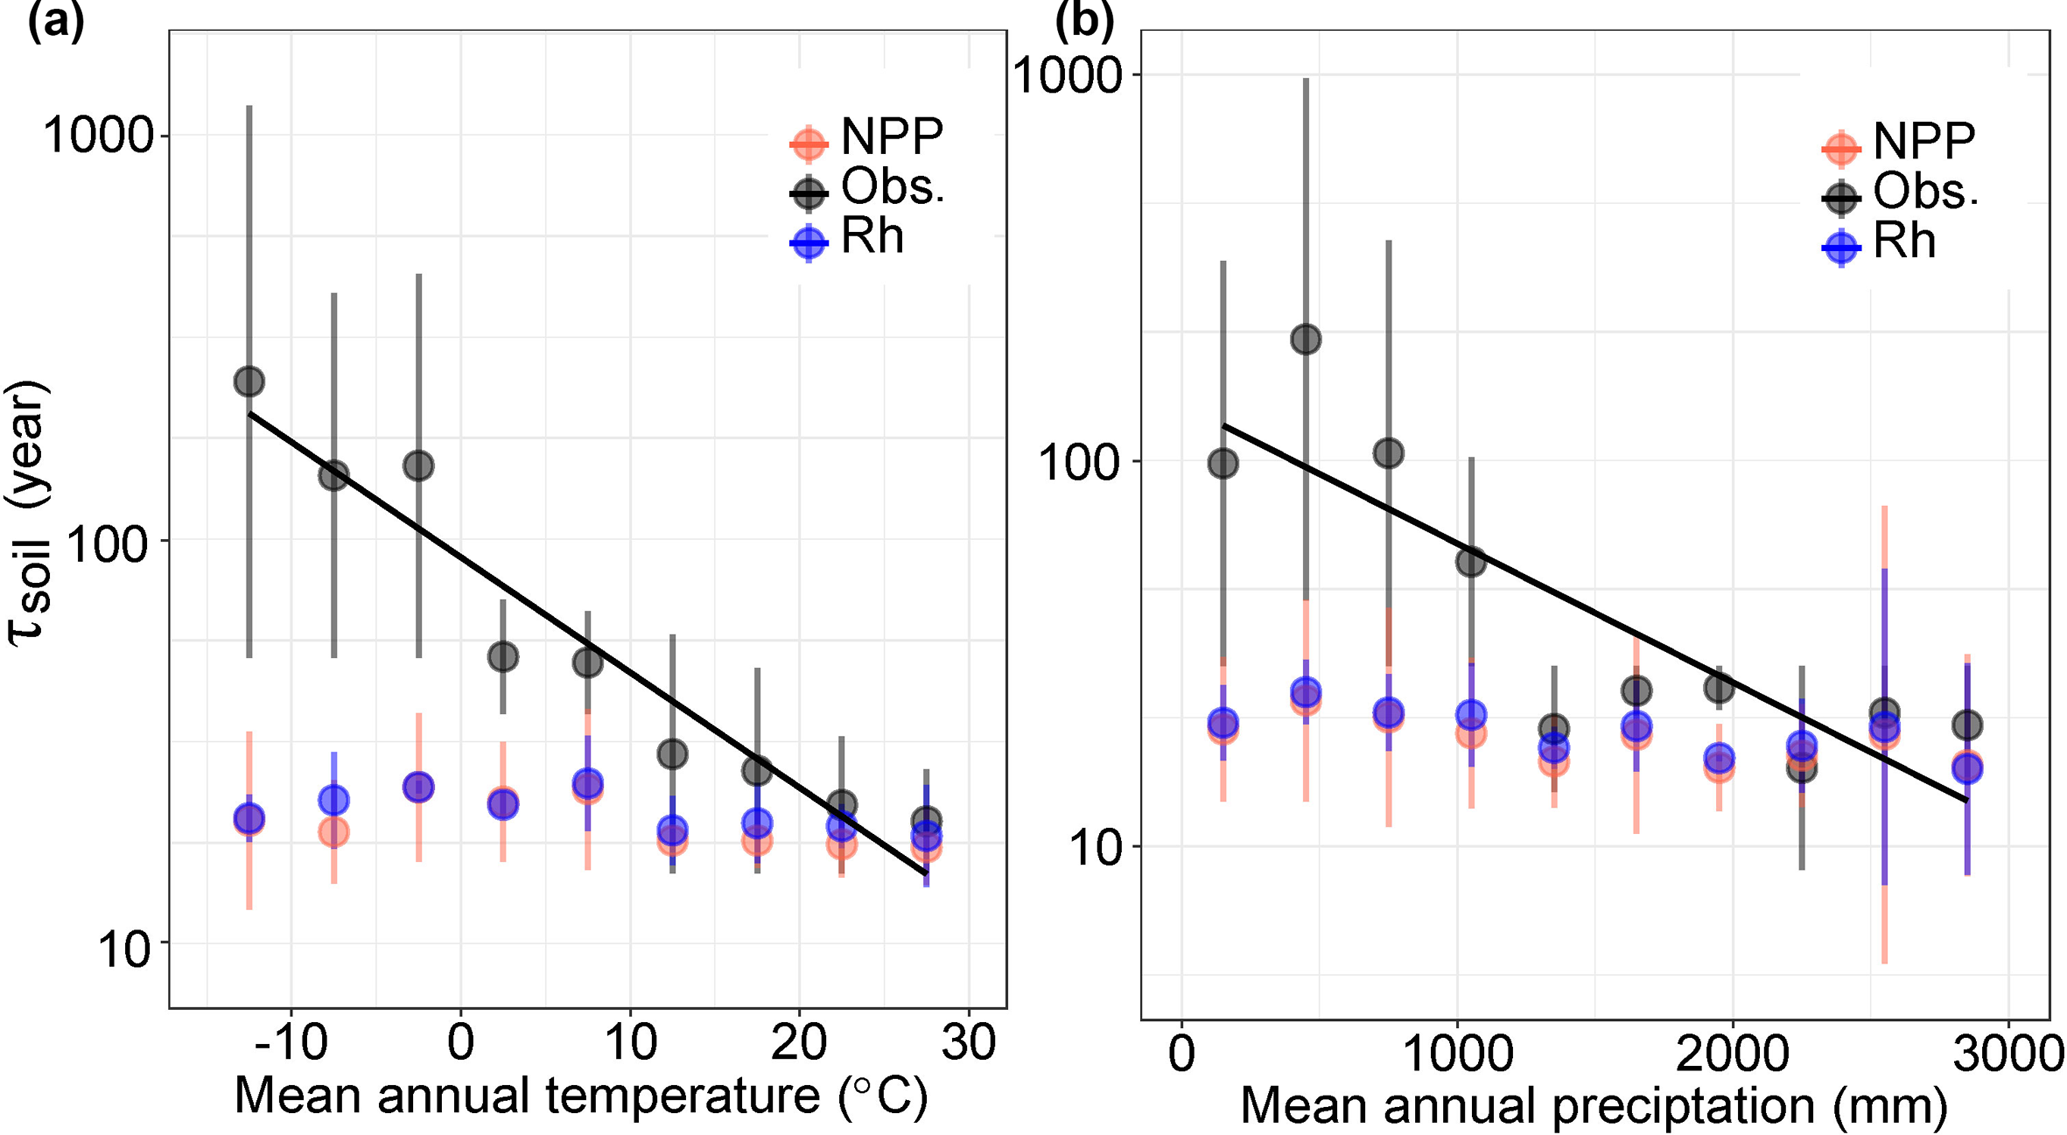 BG - Evaluating the simulated mean soil carbon transit times by